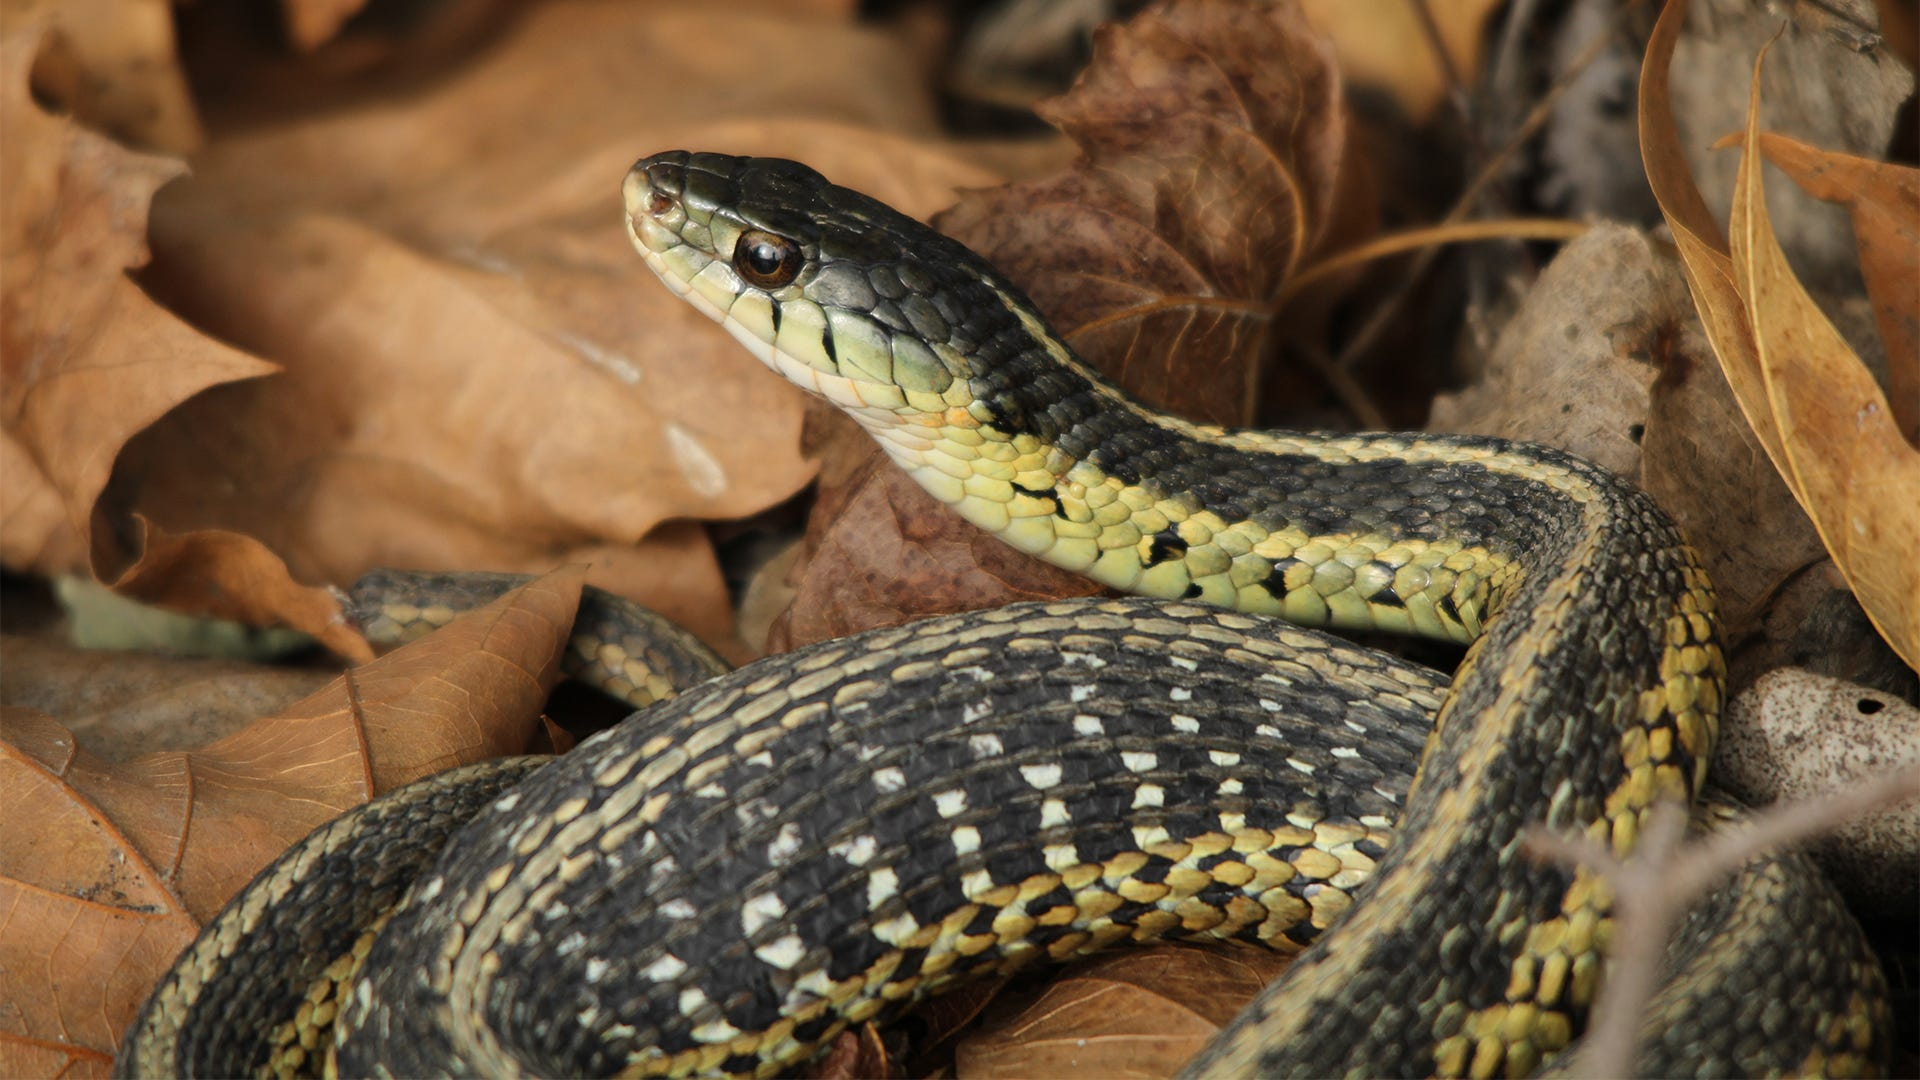 How to Get Rid of Garter Snakes